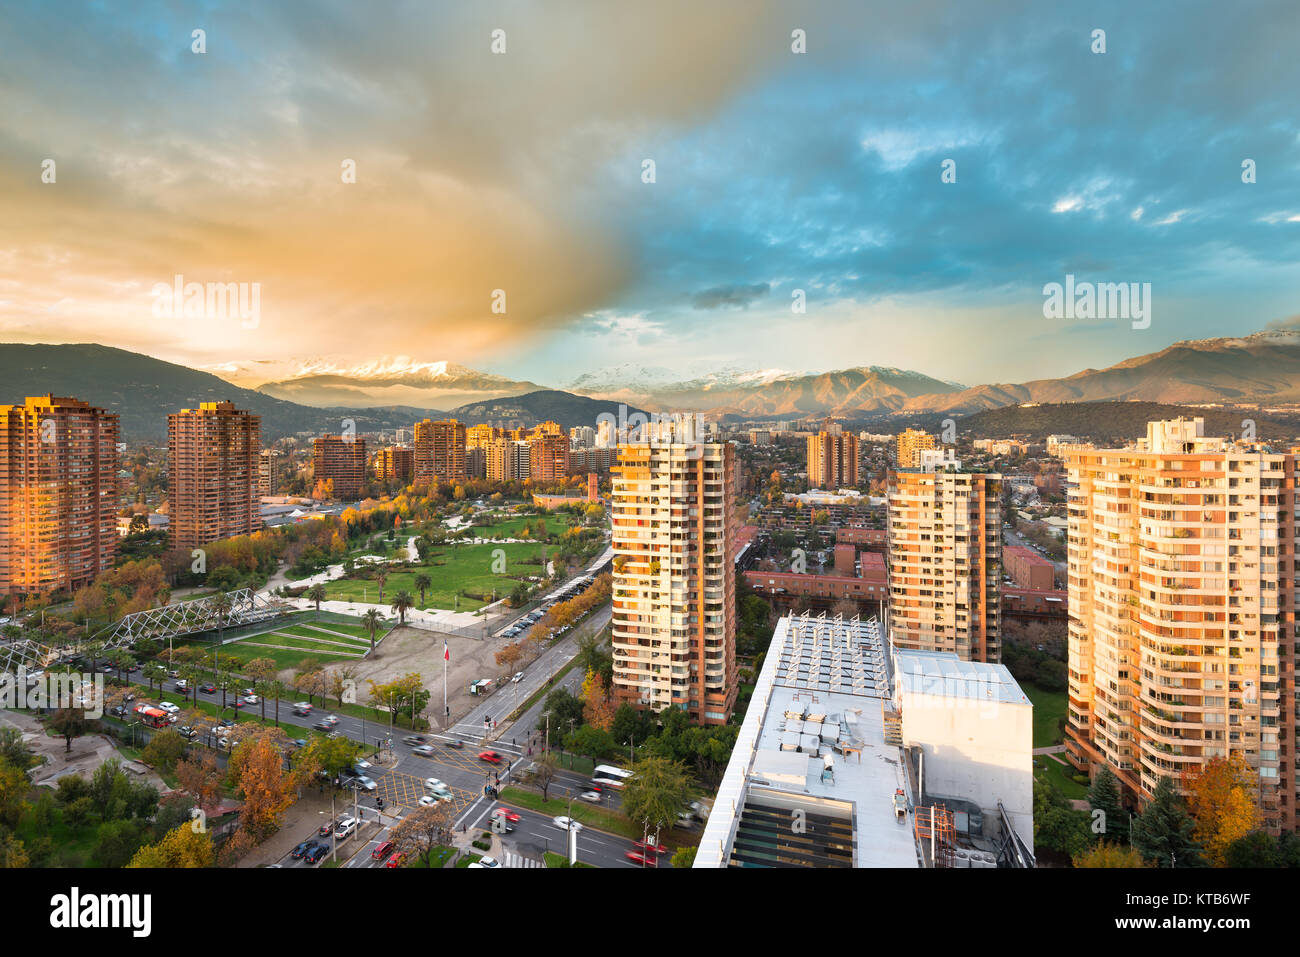 Skyline of buildings around Juan Pablo II park at a wealthy neighborhood in Las Condes district, Santiago de Chile - Stock Image